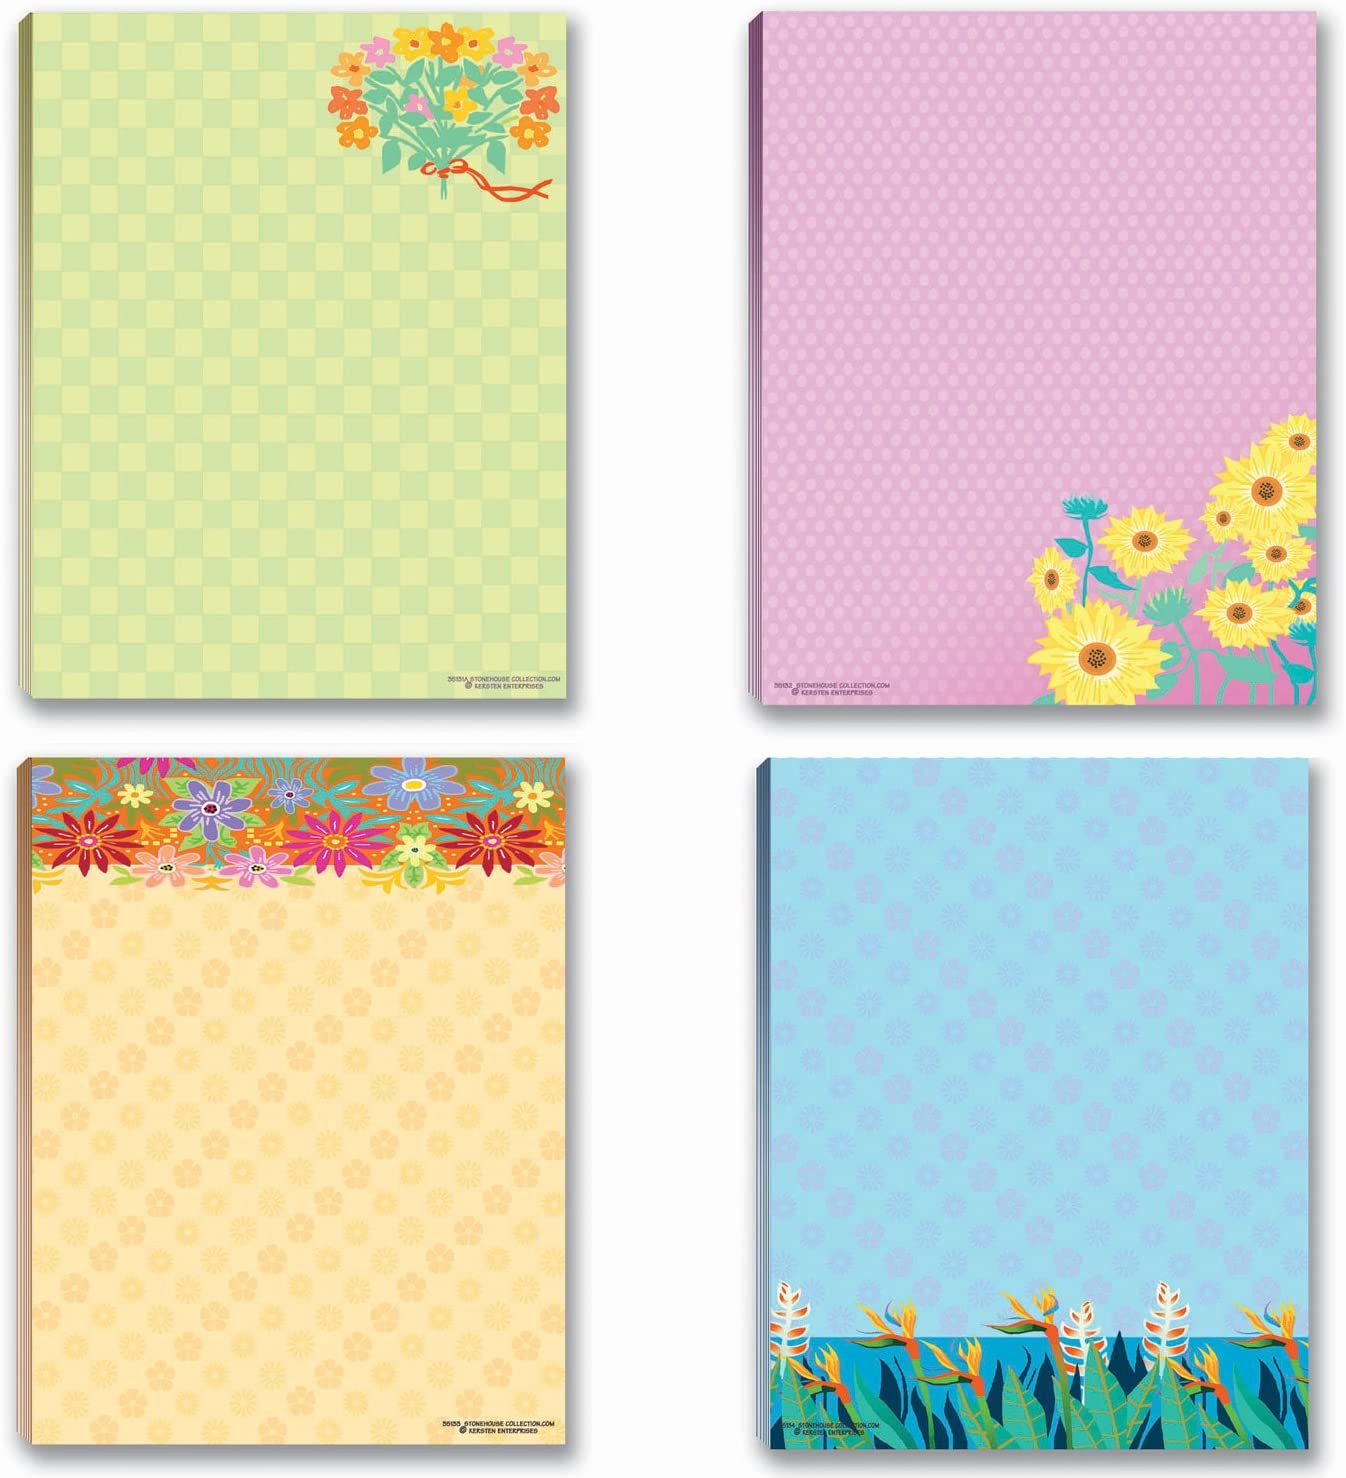 Floral Notepads - 4 Assorted Note Pads - Flower Theme Pads